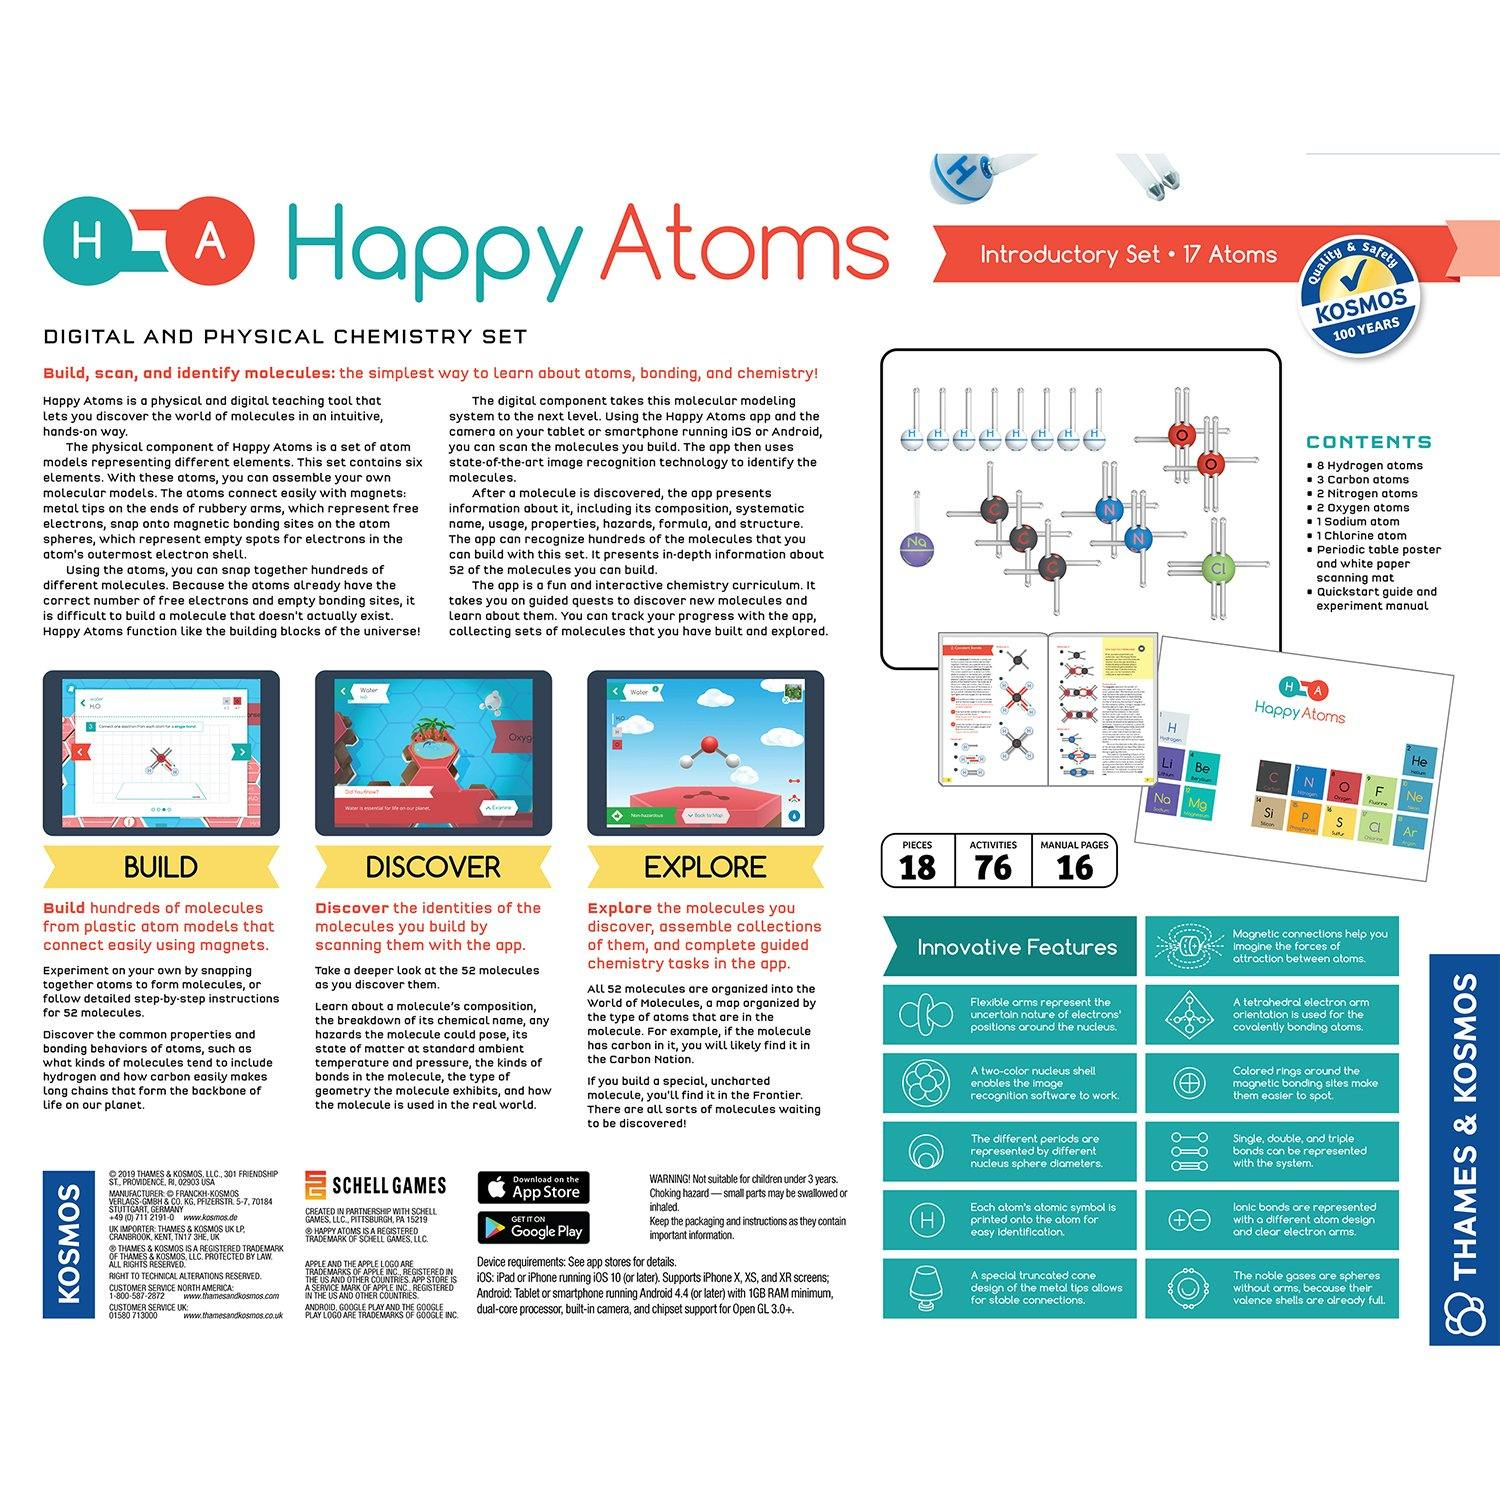 Happy Atoms Introductory Set 2